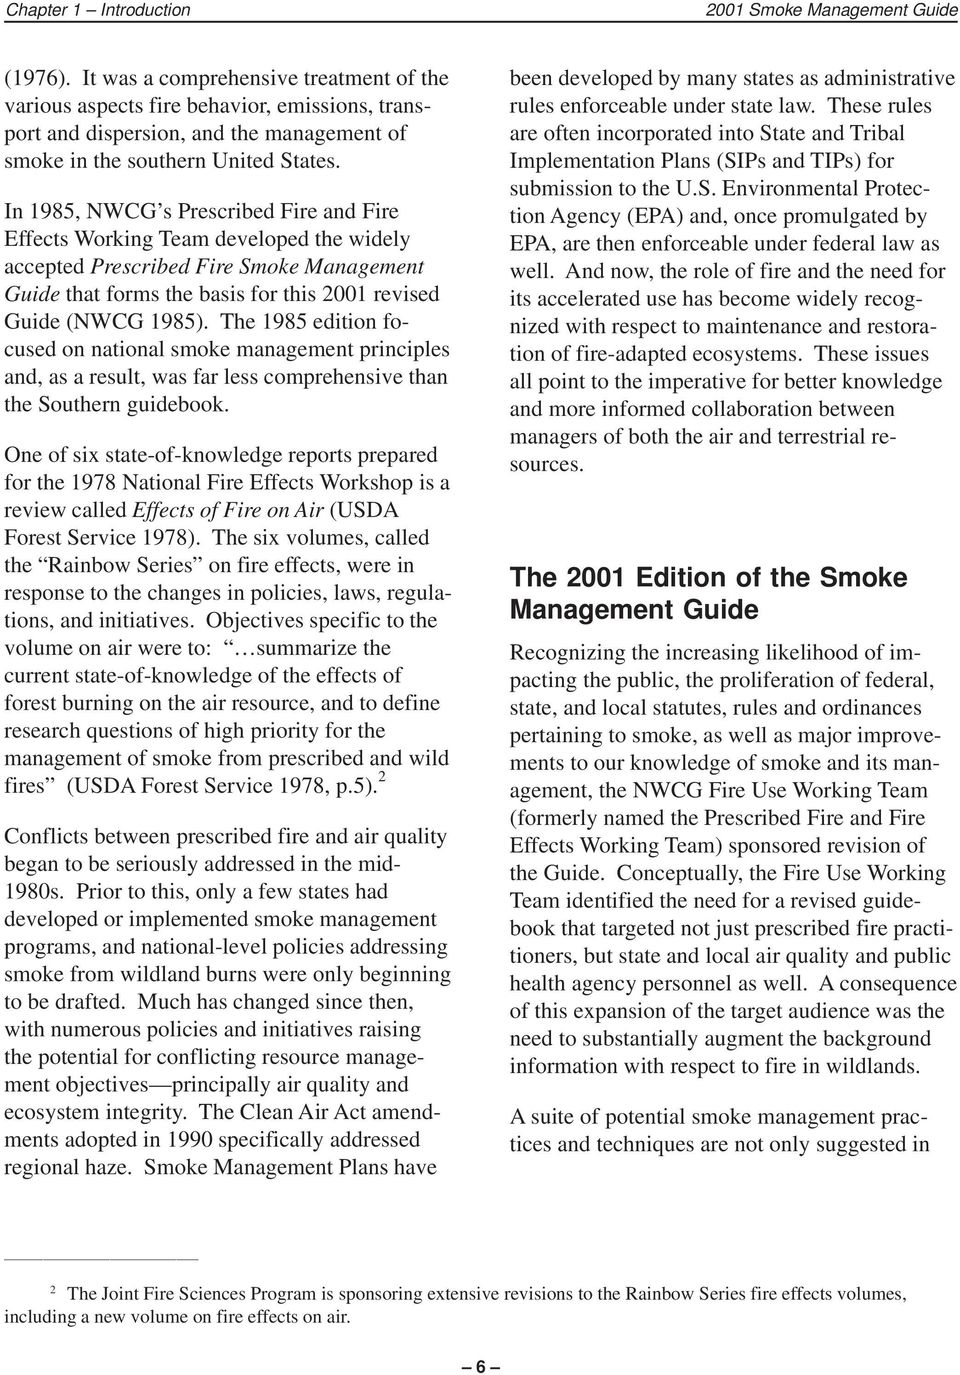 In 1985, NWCG s Prescribed Fire and Fire Effects Working Team developed the widely accepted Prescribed Fire Smoke Management Guide that forms the basis for this 2001 revised Guide (NWCG 1985).